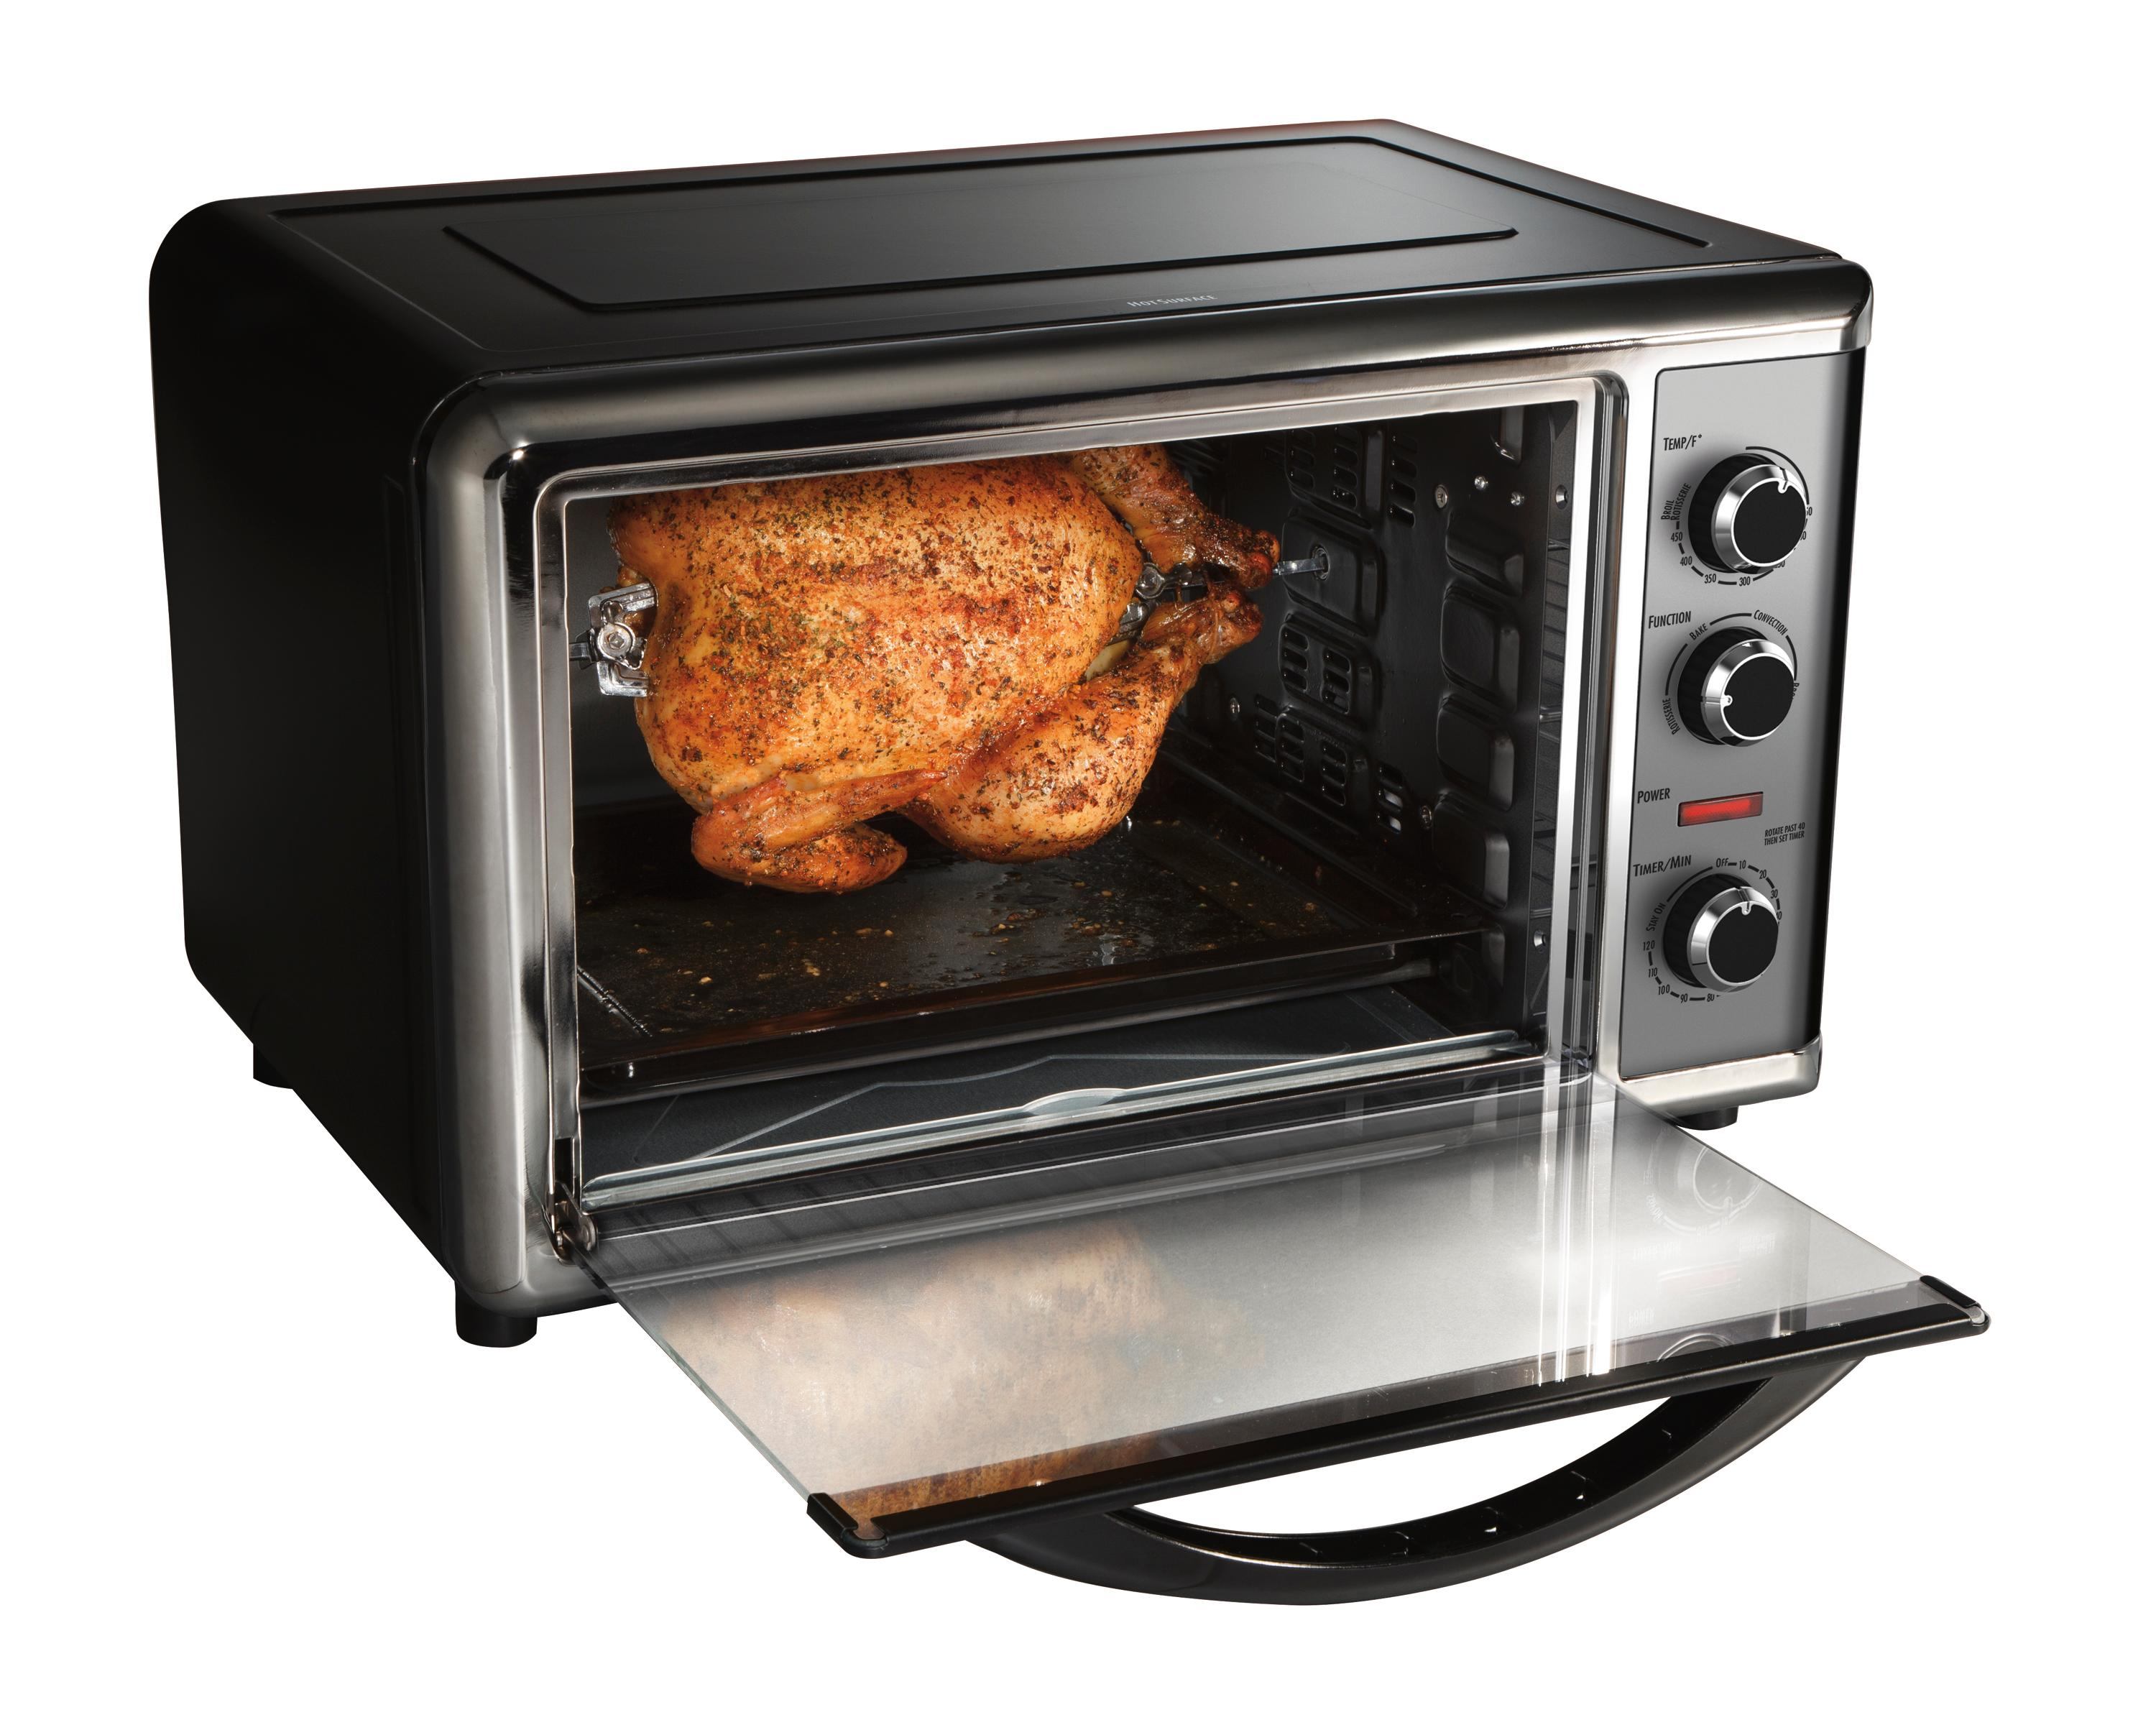 Commercial Pizza Oven Rotisserie Convection Toaster